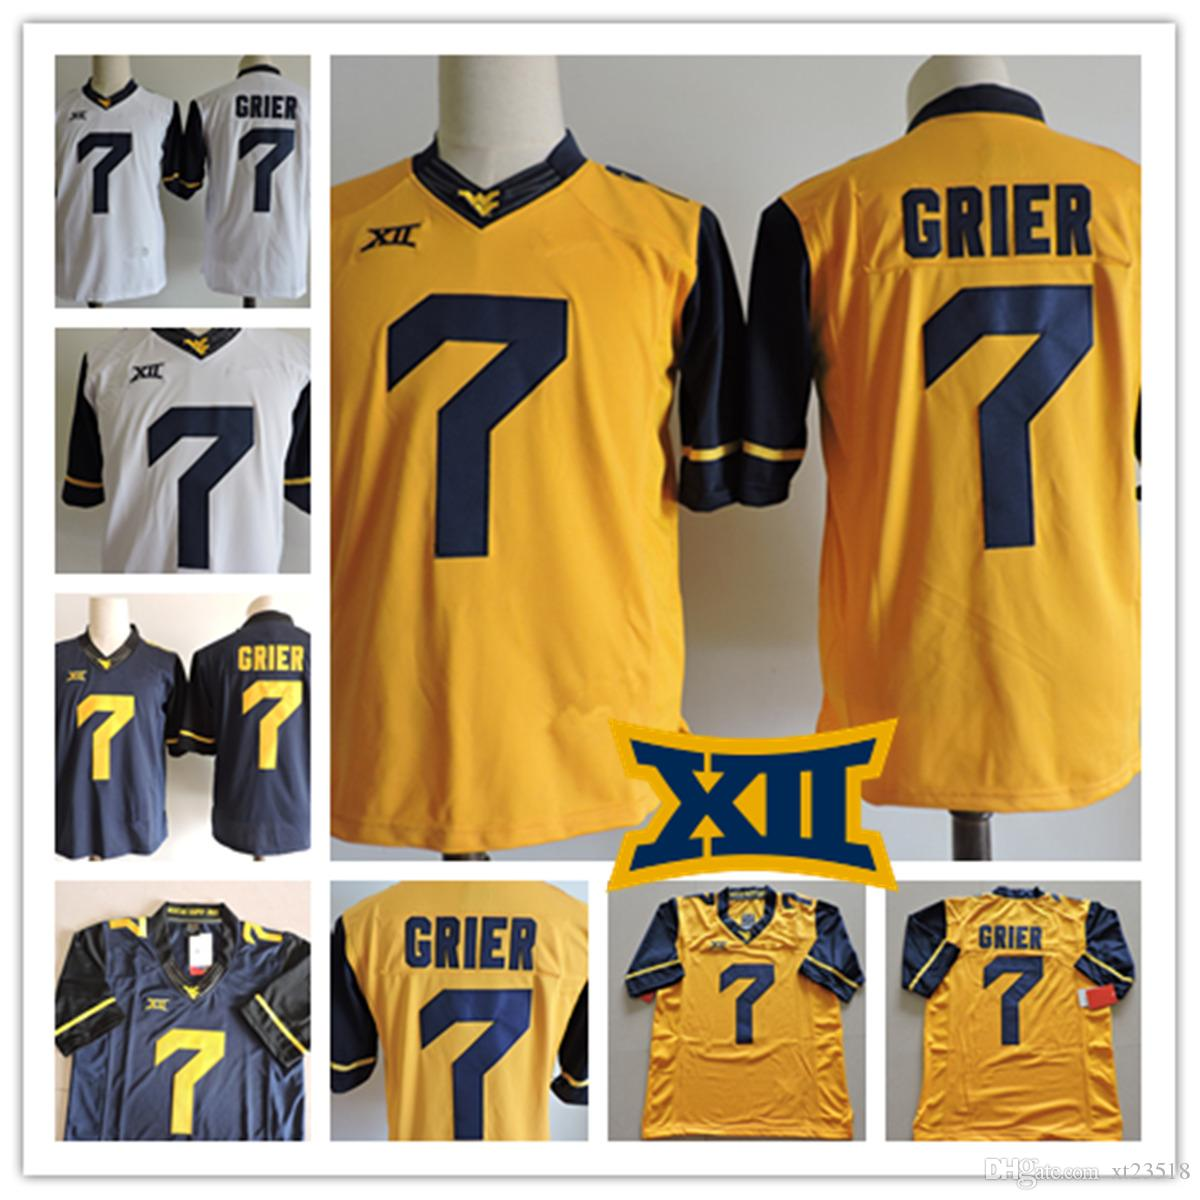 ... blue stitched ncaa jersey cf1c8 54e03  czech gold mens west virginia  mountaineers will grier college football jerseys stithced 7 will grier ncaa 063c8cd3c